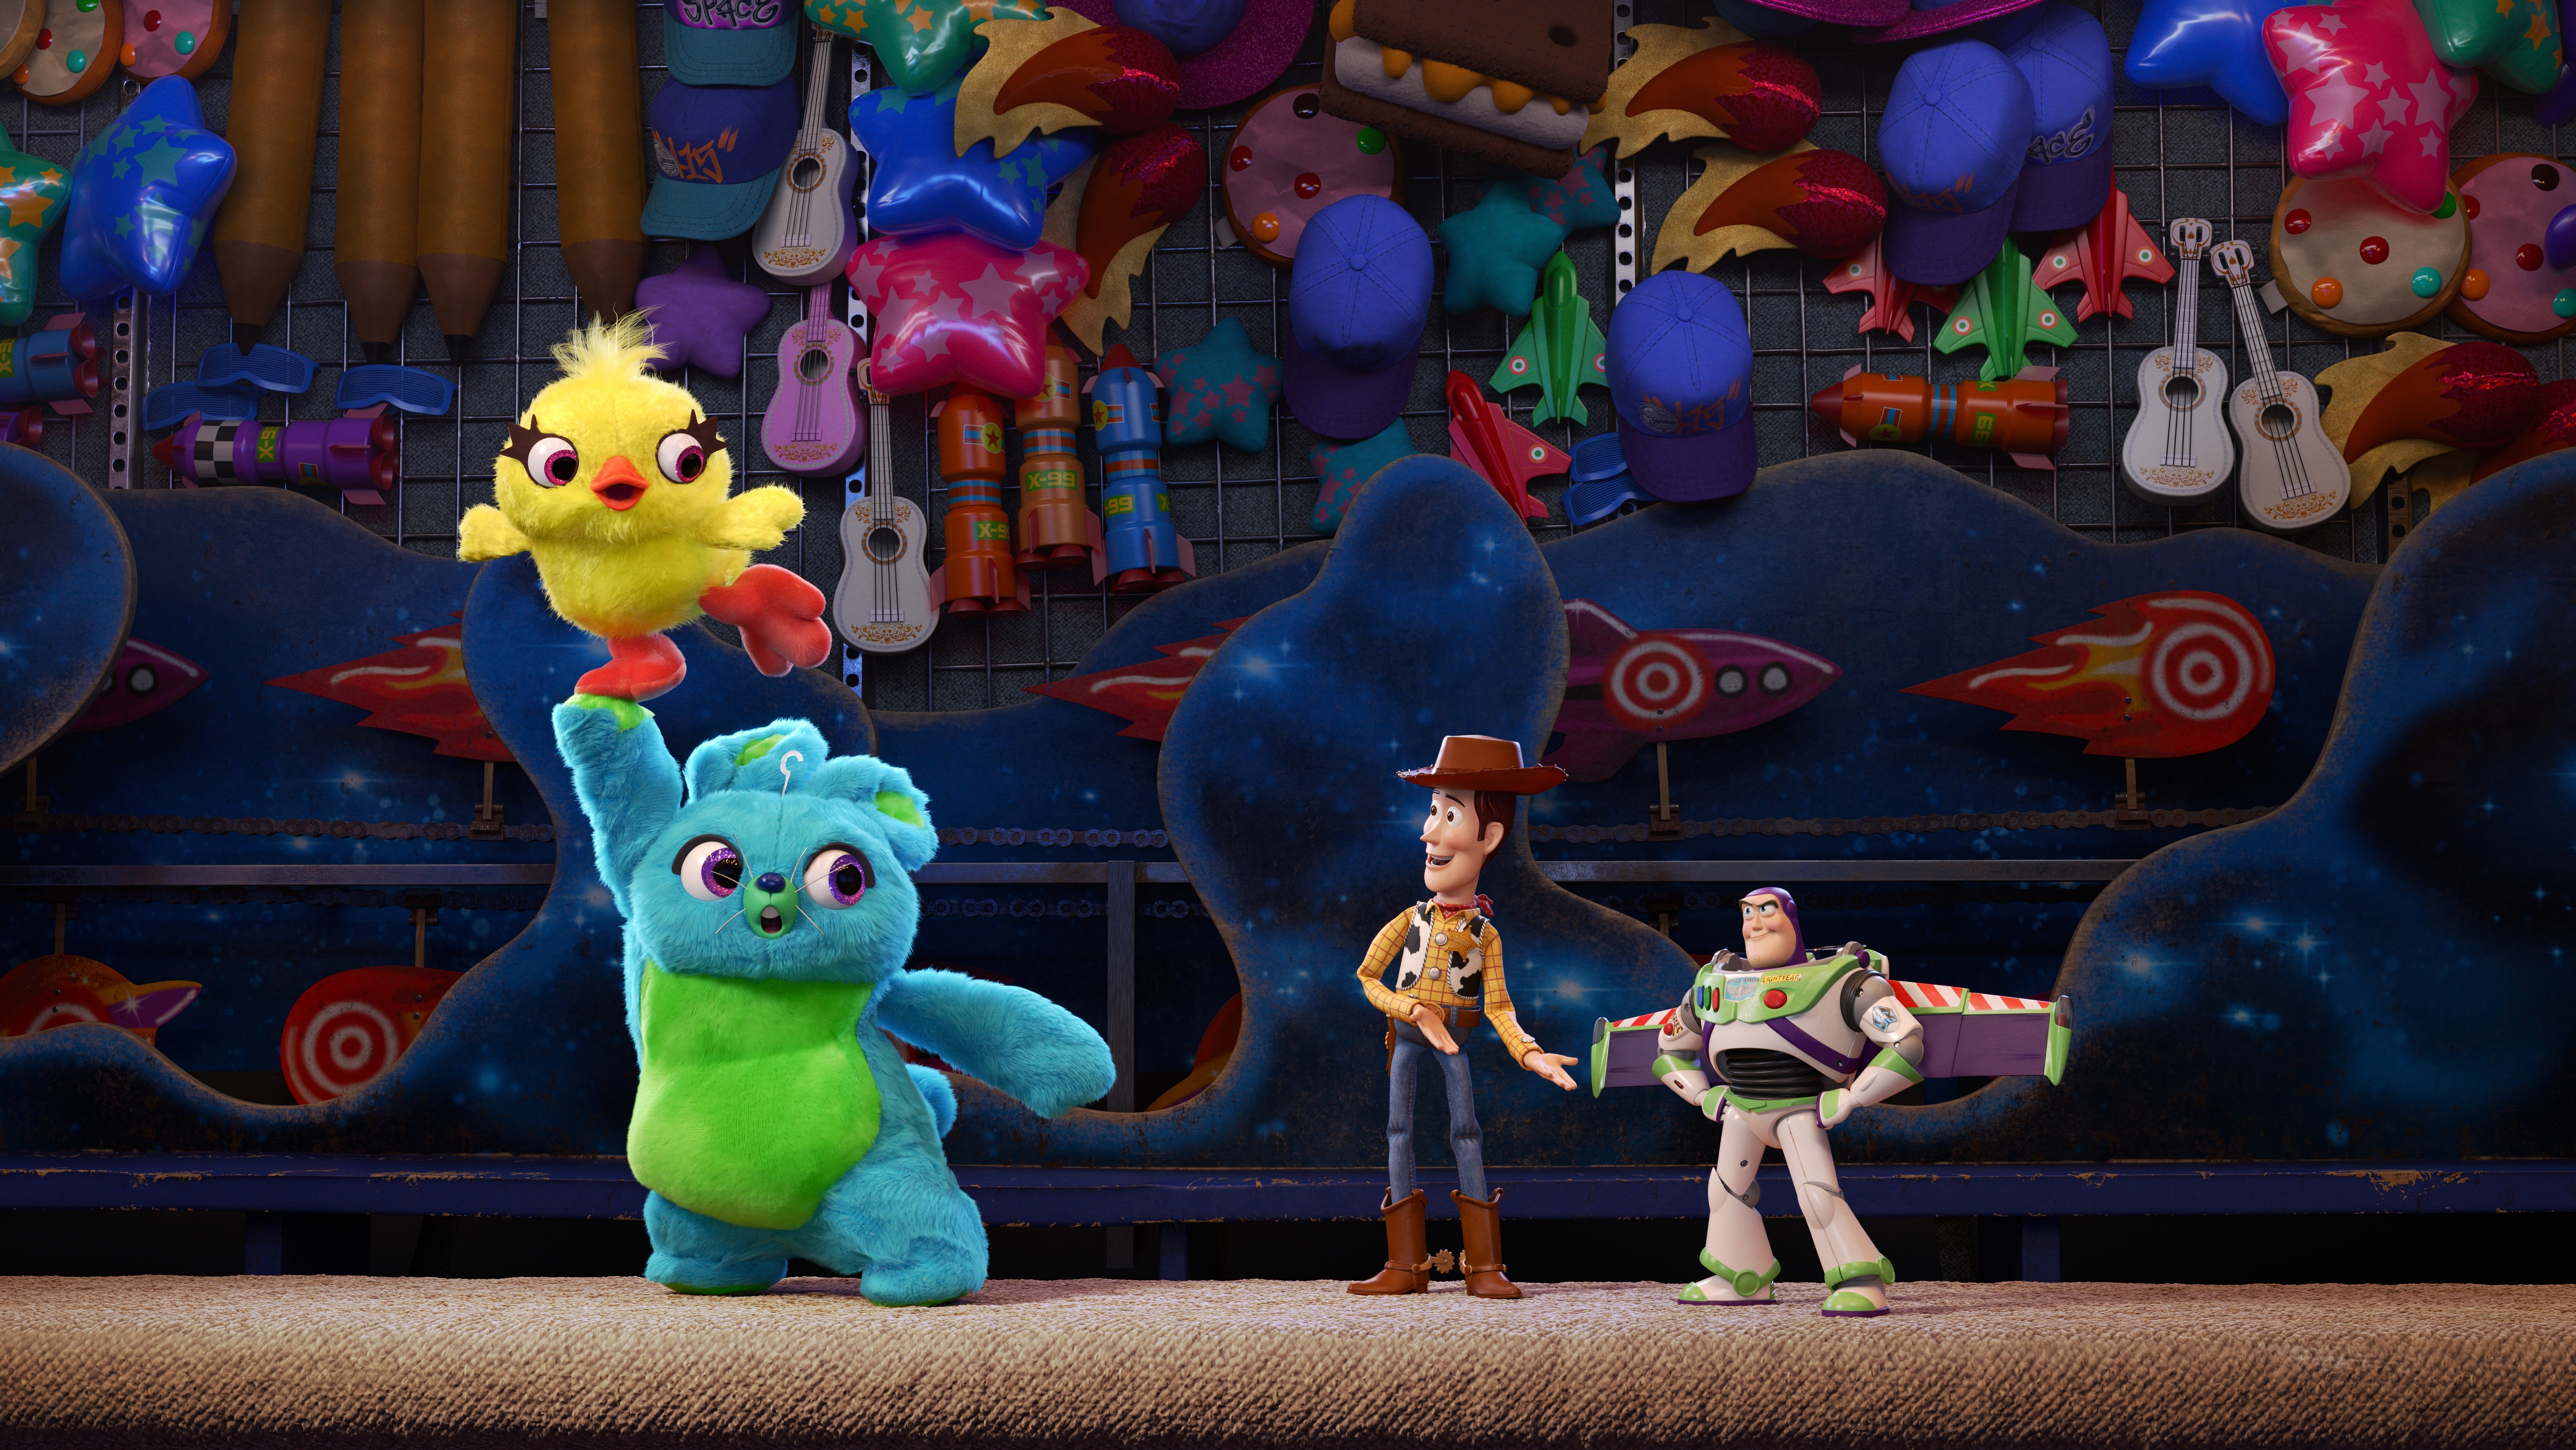 2019 Toy Story 4 Image Hd Movies 4k Wallpapers Images